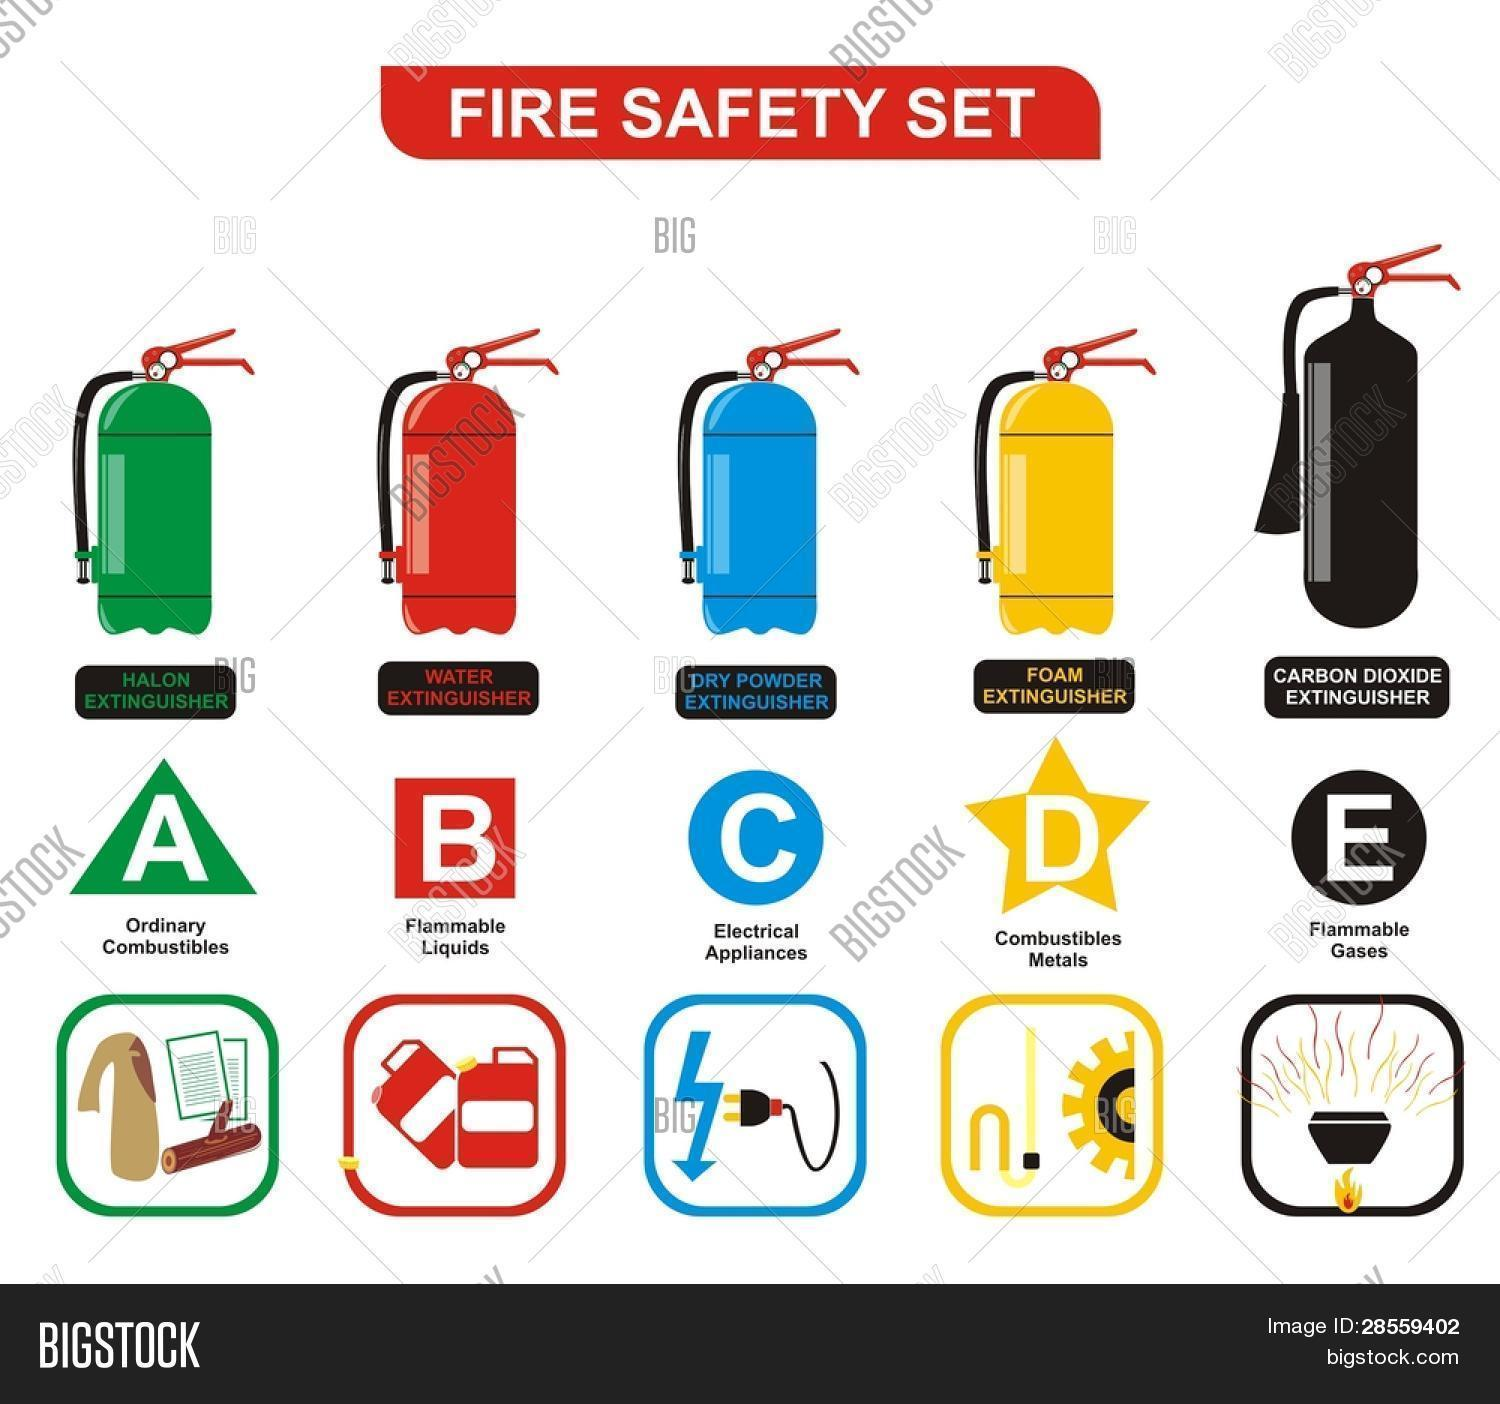 Vector Fire Safety Vector Photo Free Trial Bigstock